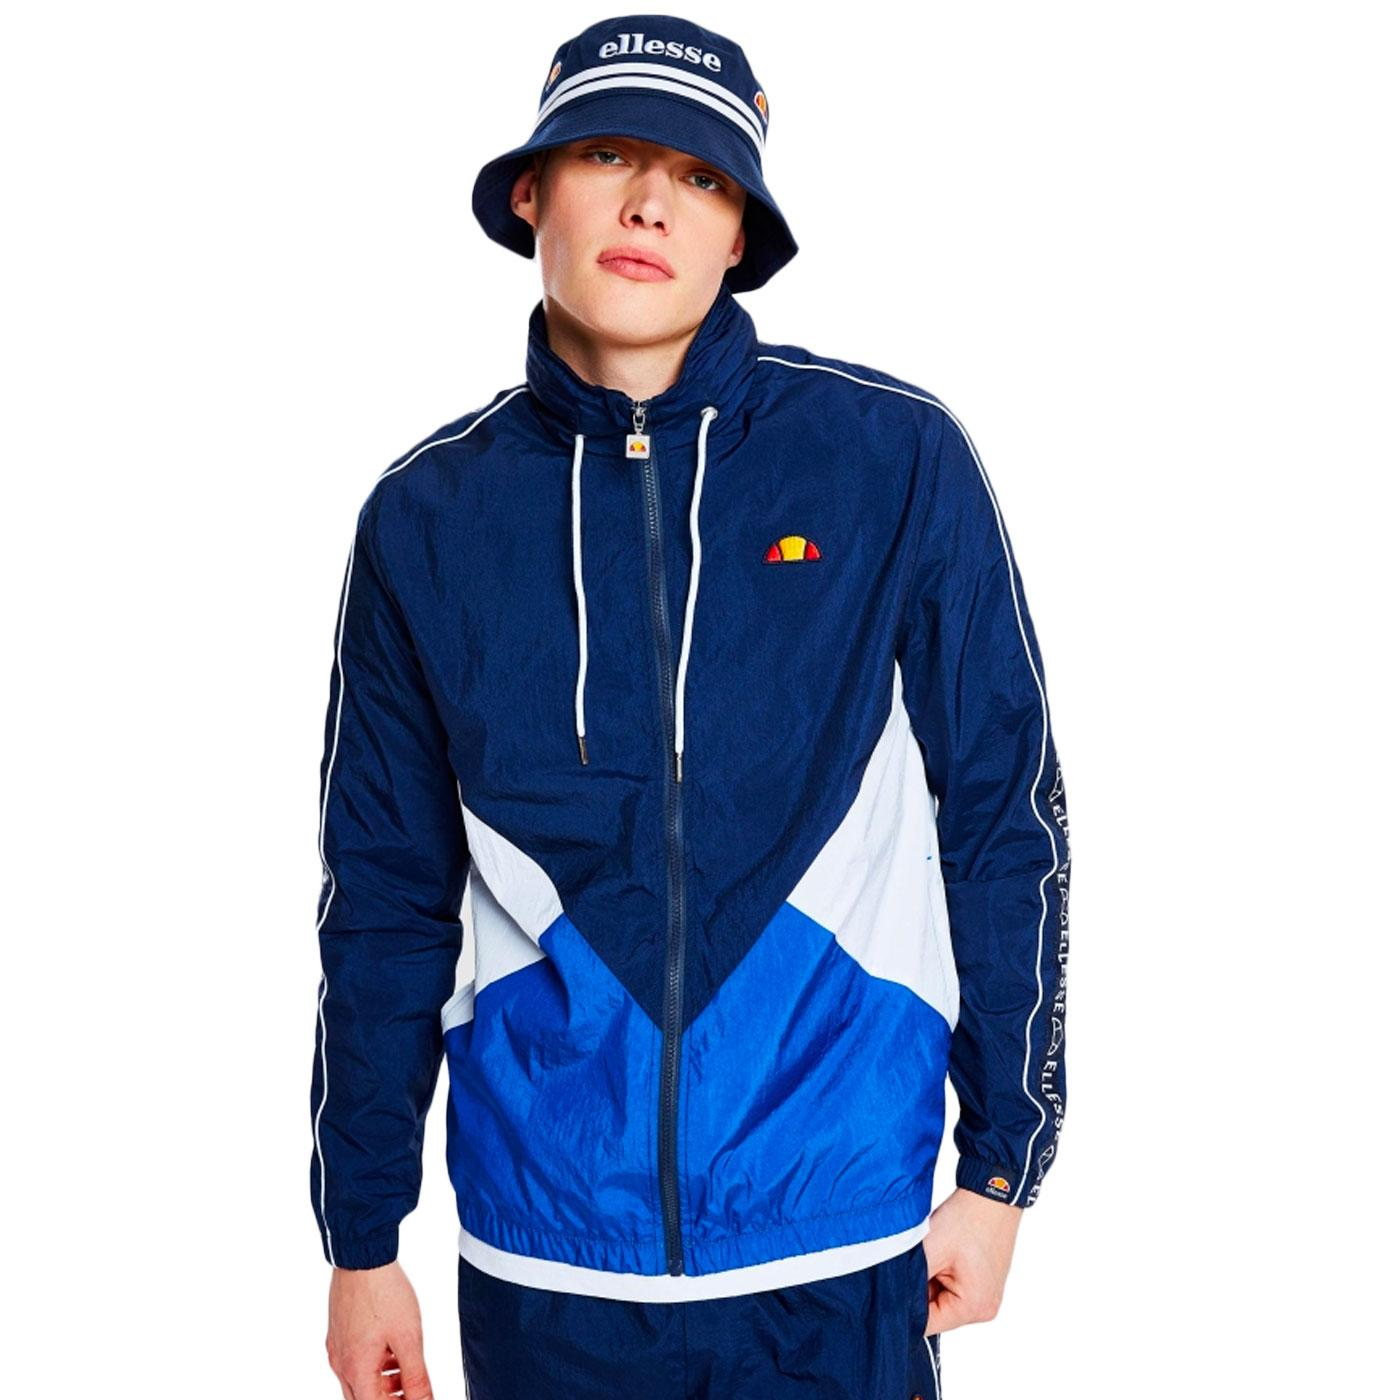 Lapaccio ELLESSE Retro 1980s Funnel Neck Jacket N